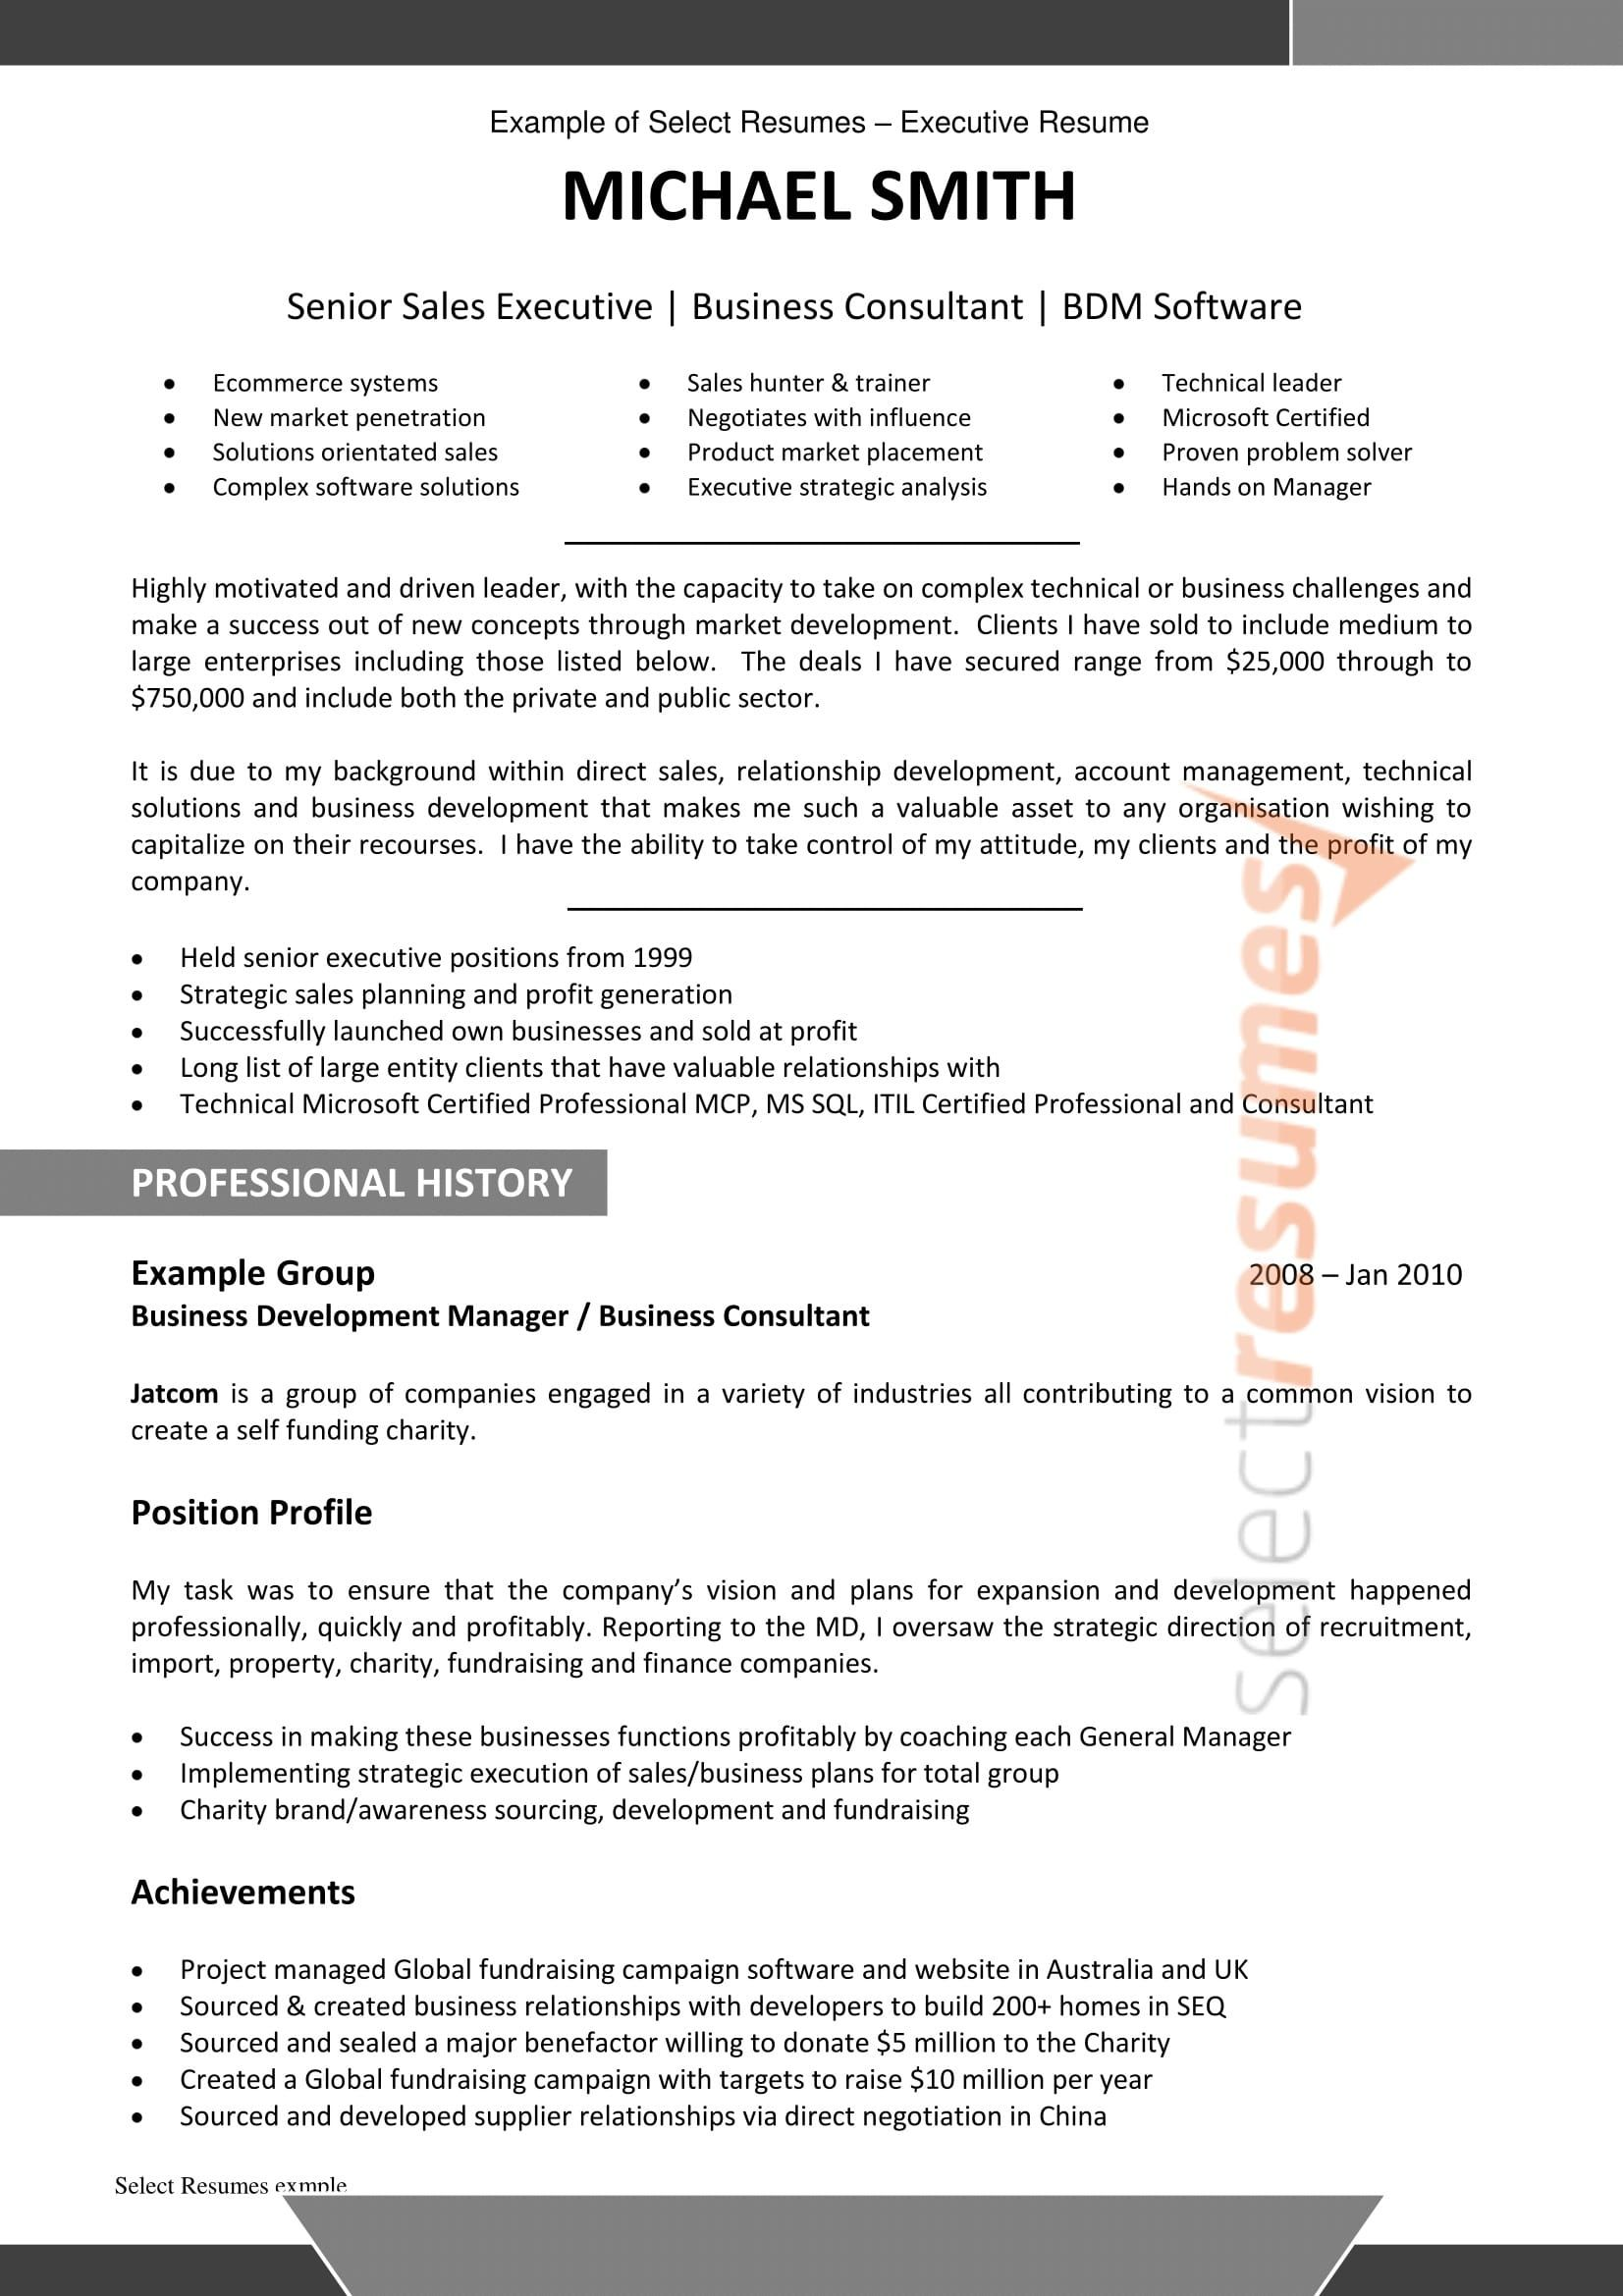 Online professional resume writing services